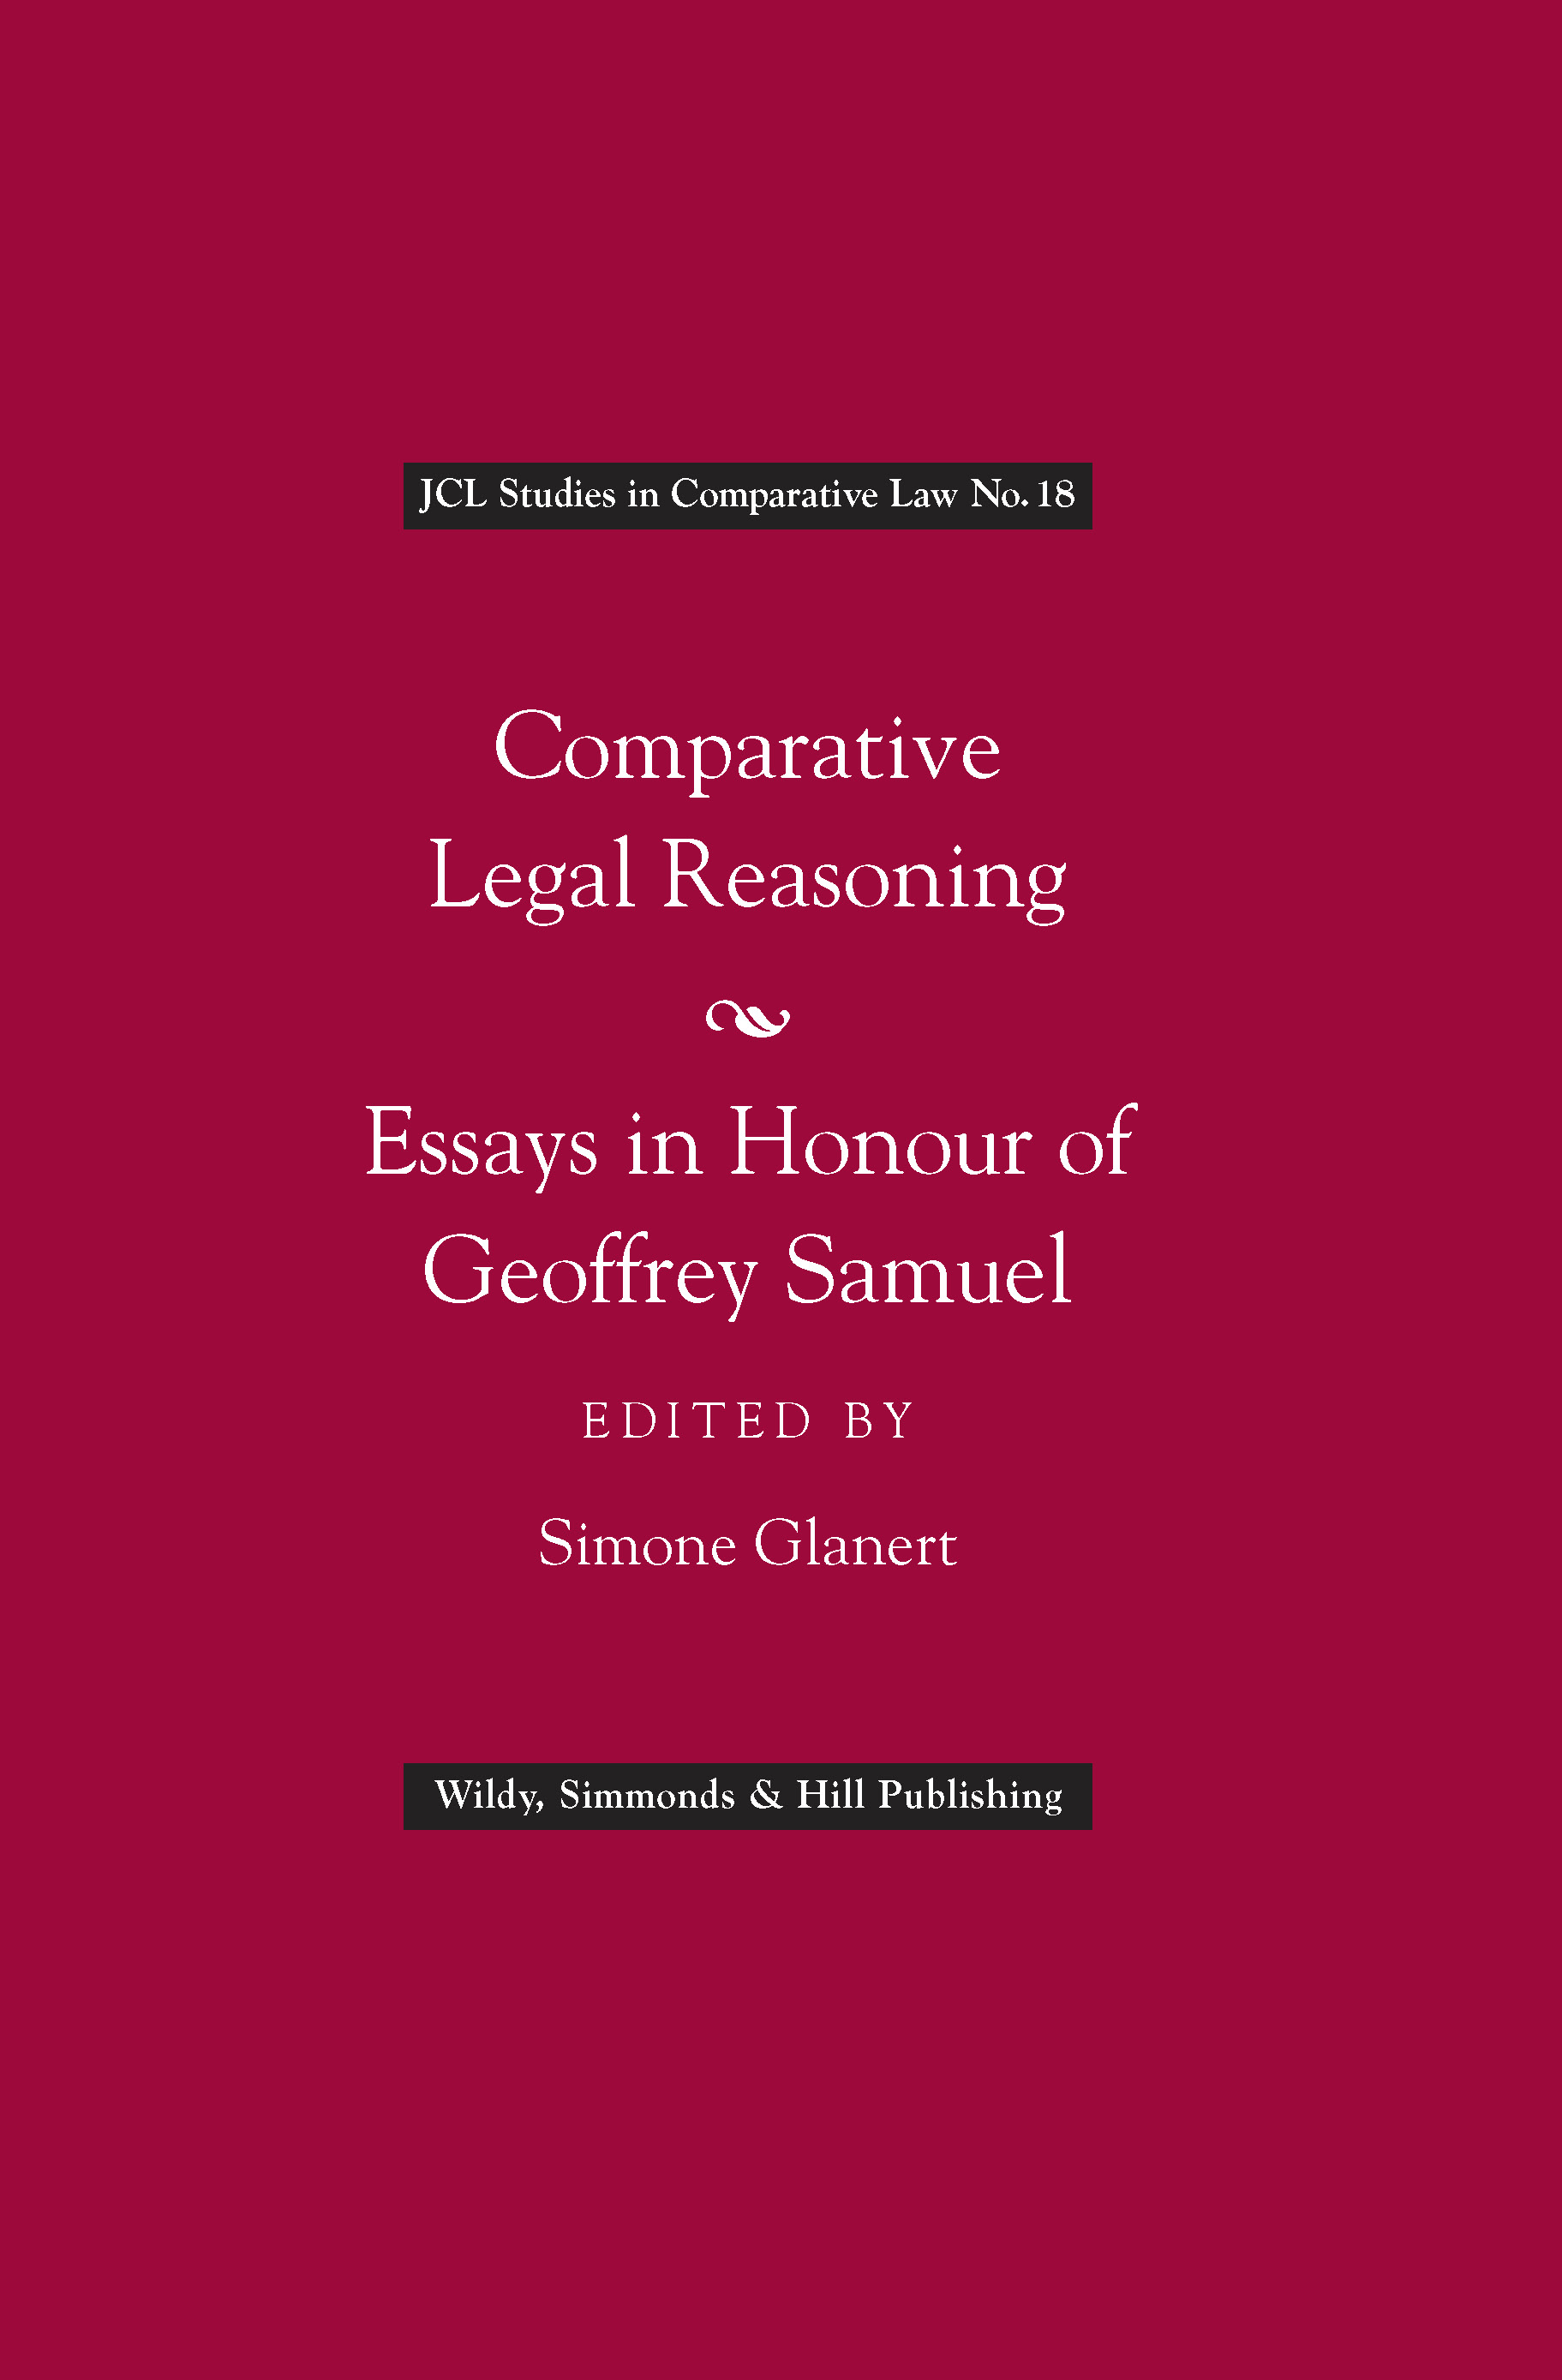 legal reasoning essays The law school (bar) exam writing / study / preparation system (leews) will help you prepare for and write a exams (b's guaranteed) and/or pass the bar wentworth miller - attorney, yale law graduate ('77), rhodes scholar has developed polished for over 25 years comprehensive system of preparation exam taking, applicable to any essay-type in .